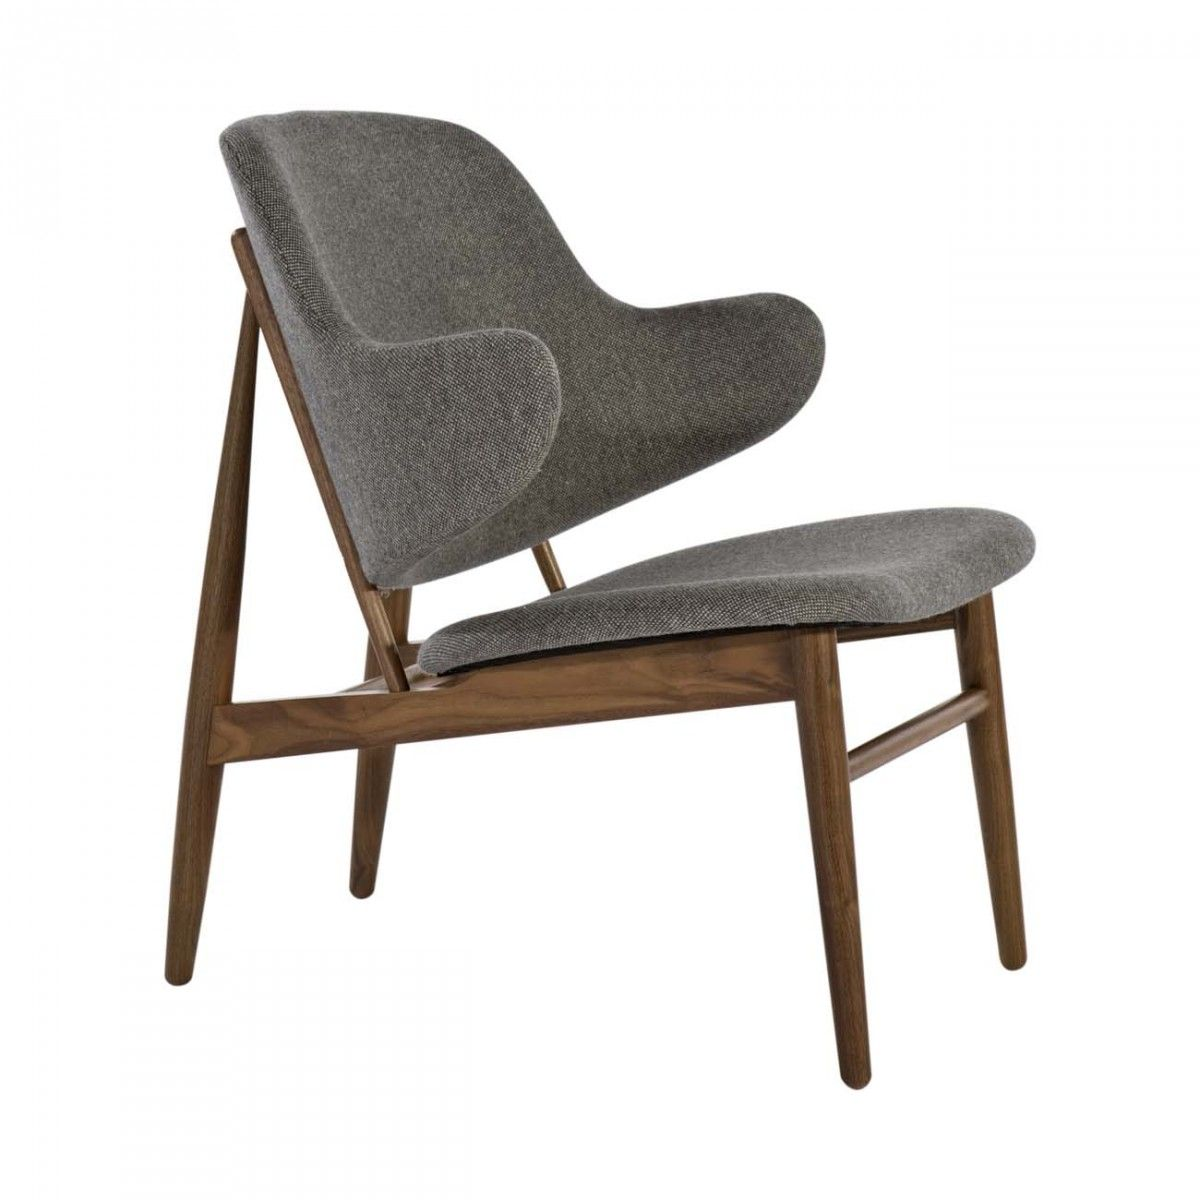 Koford Larsen IL 10 Easy Lounge Chair - The Koford Larsen IL 10 Easy Lounge  Chair will enhance your home with its mid-century inspired look.